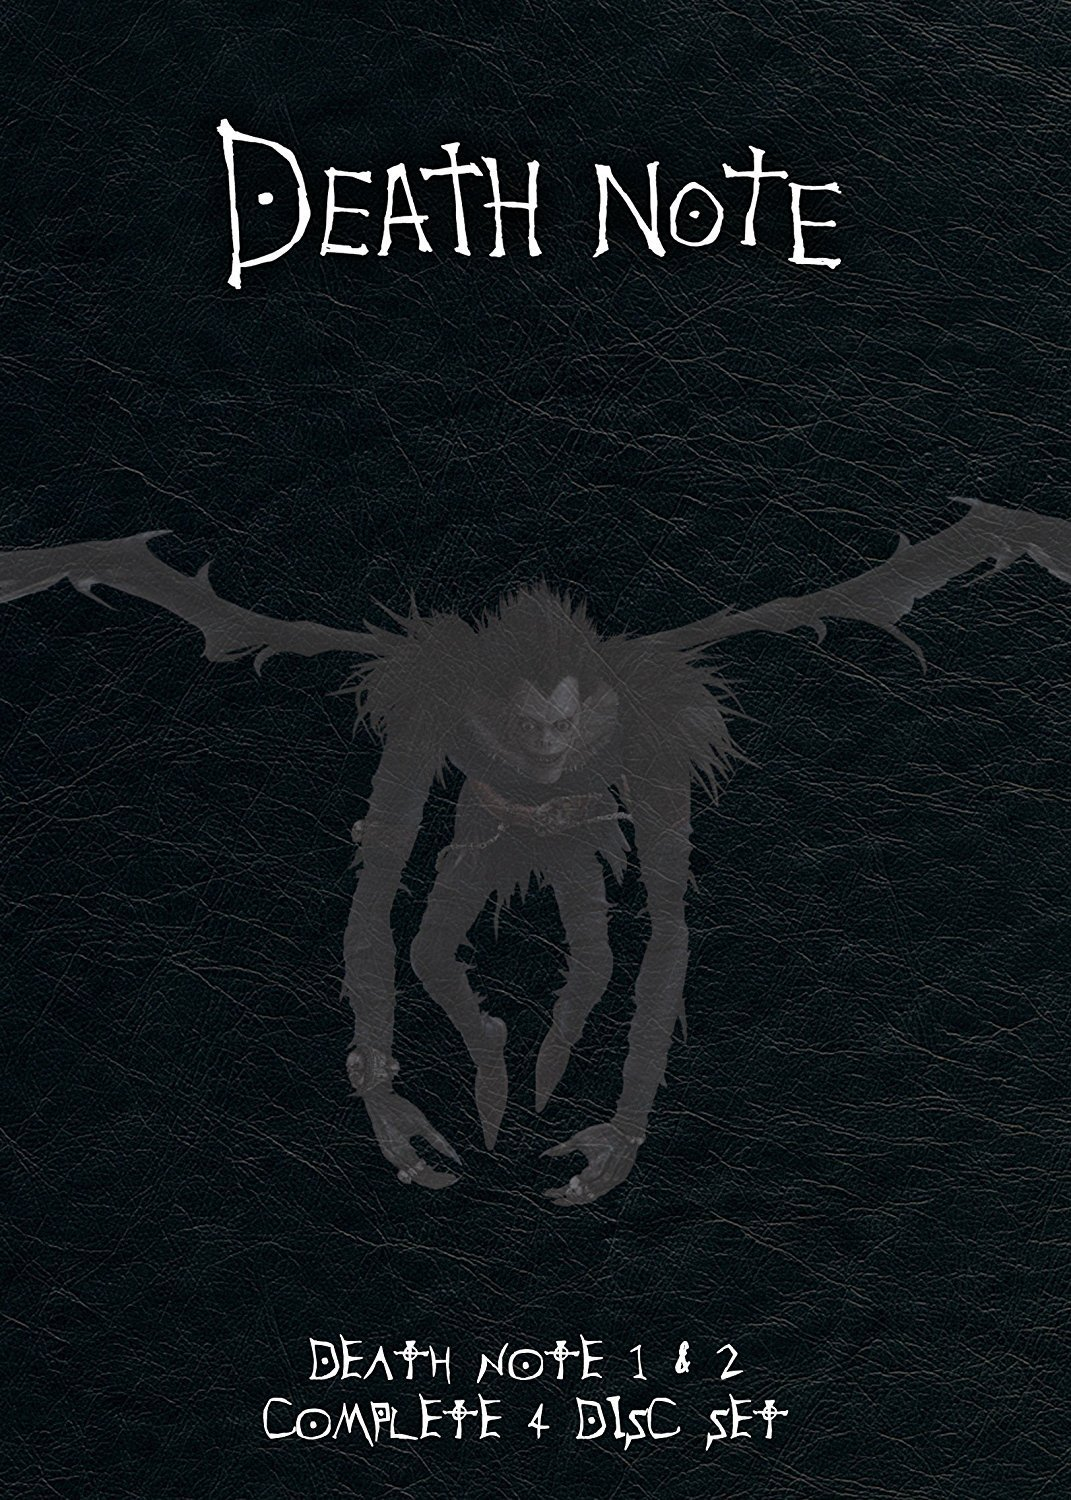 Death Note 1 and 2 COMPLETE 4 DISC SET [DVD] [2006]